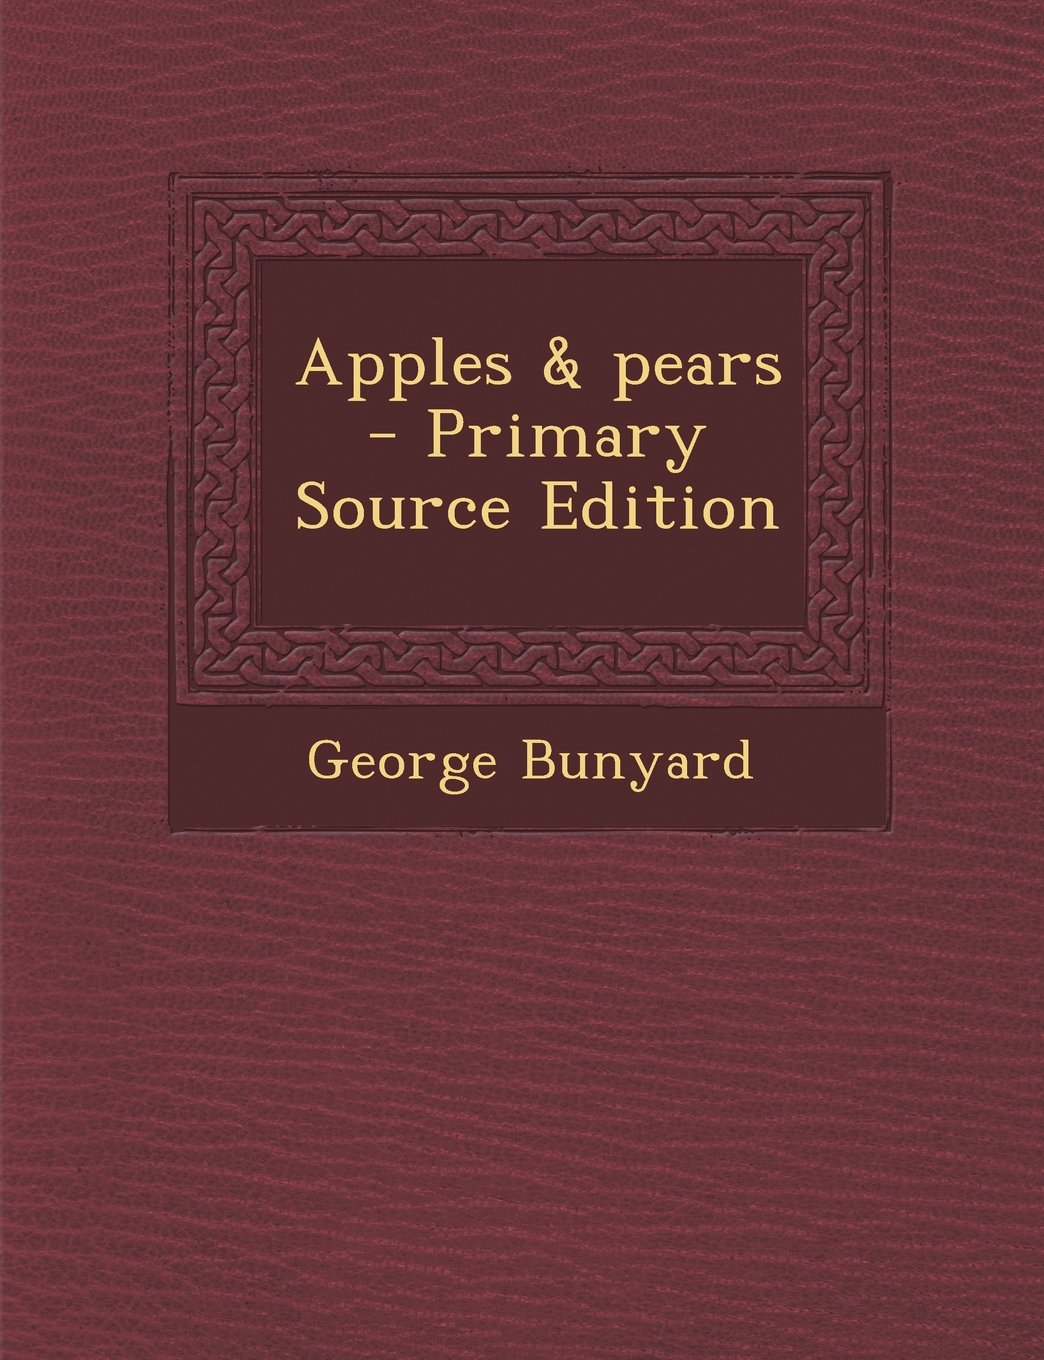 Read Online Apples & Pears - Primary Source Edition PDF